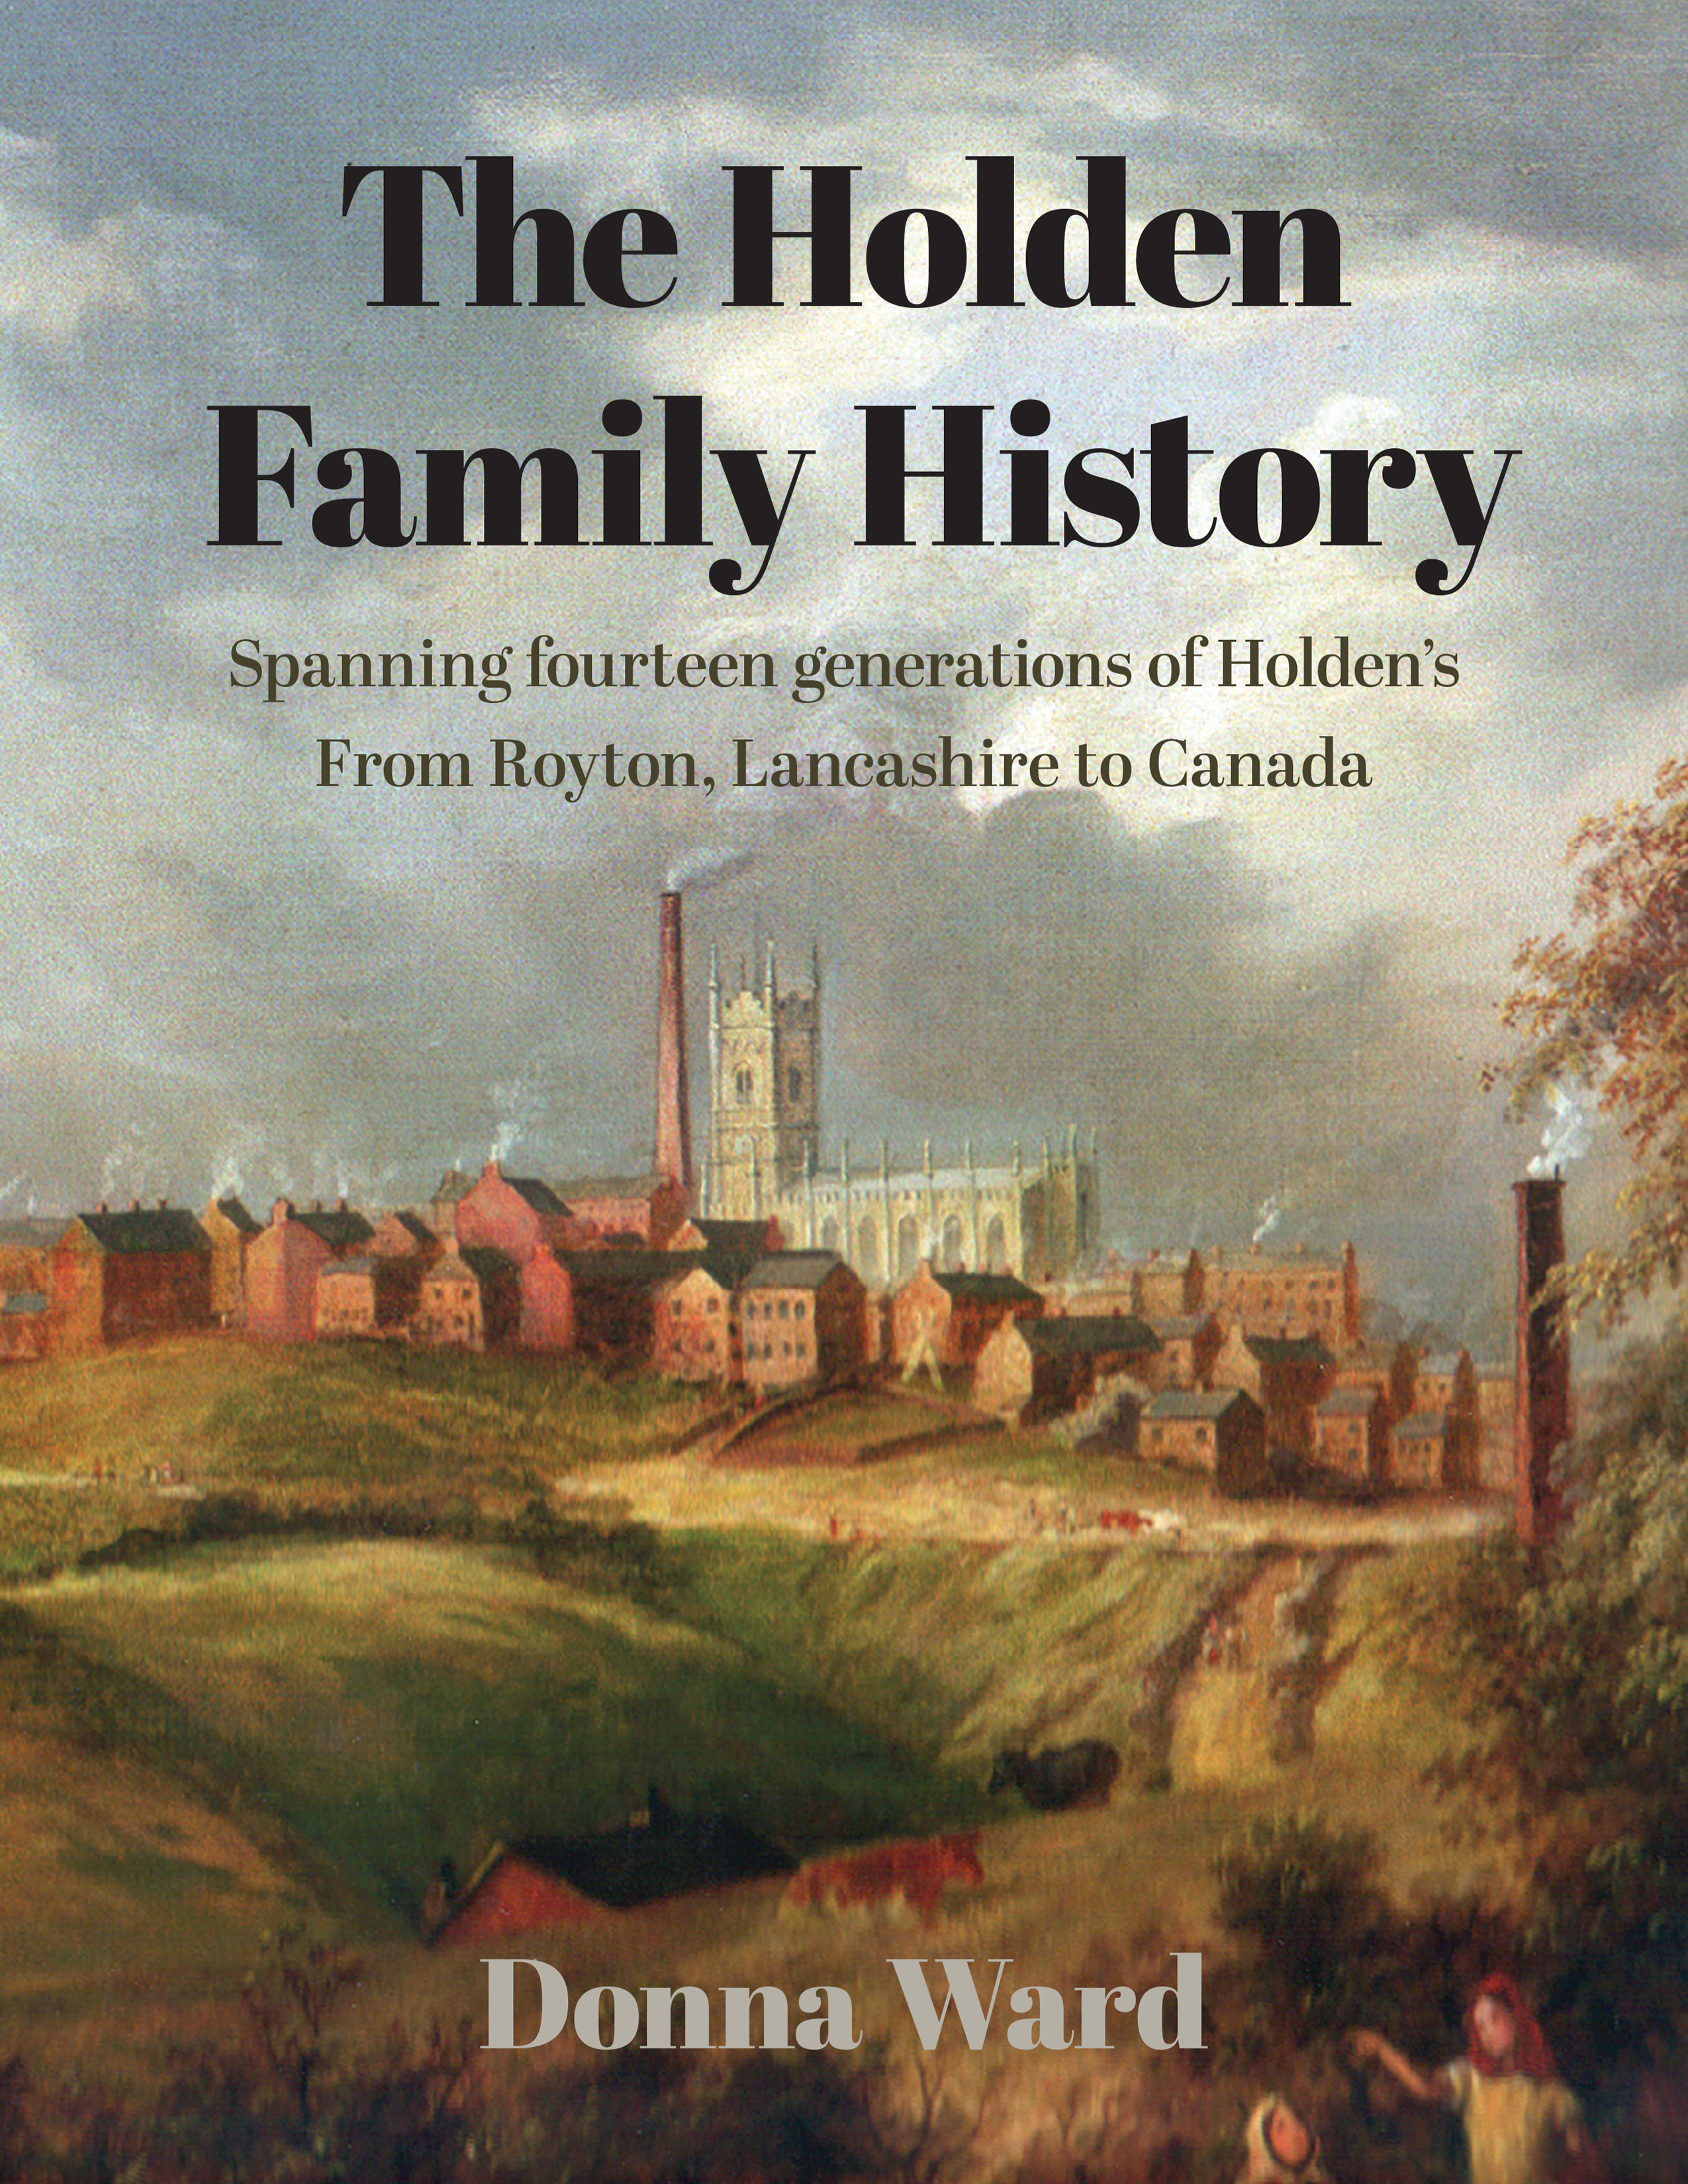 The Holden Family History by Donna Ward